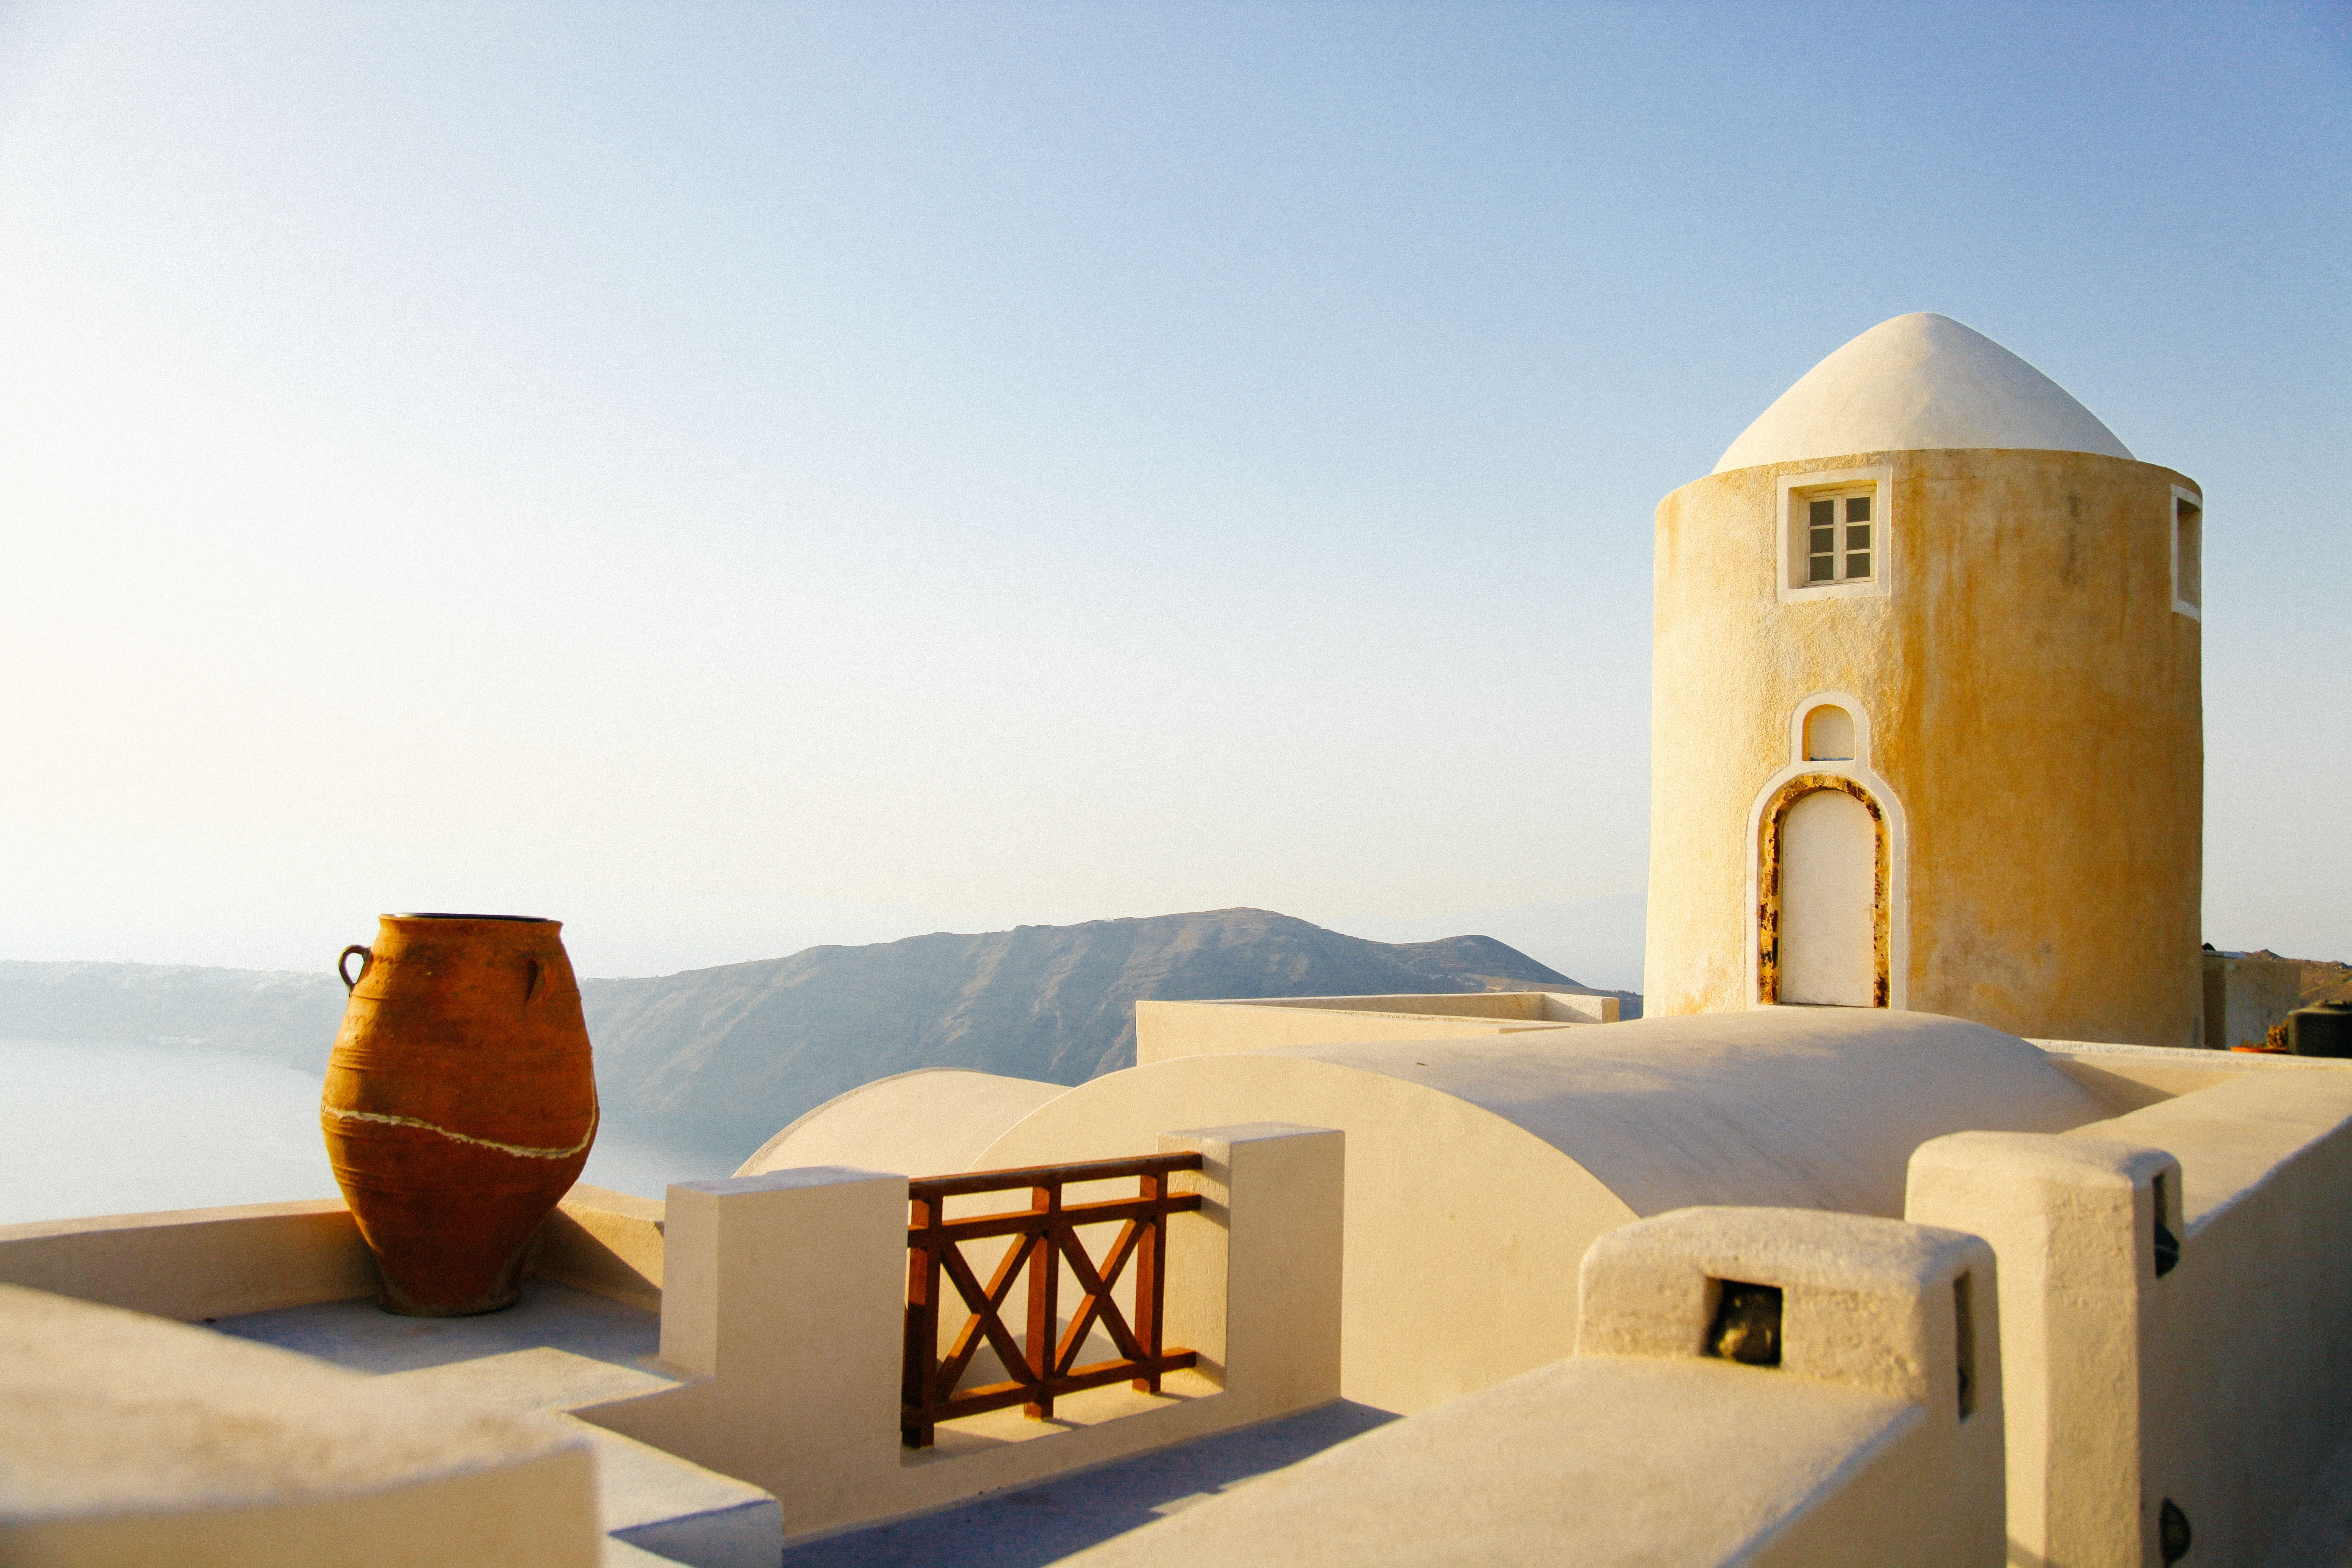 A stone building with a dome in Santorini